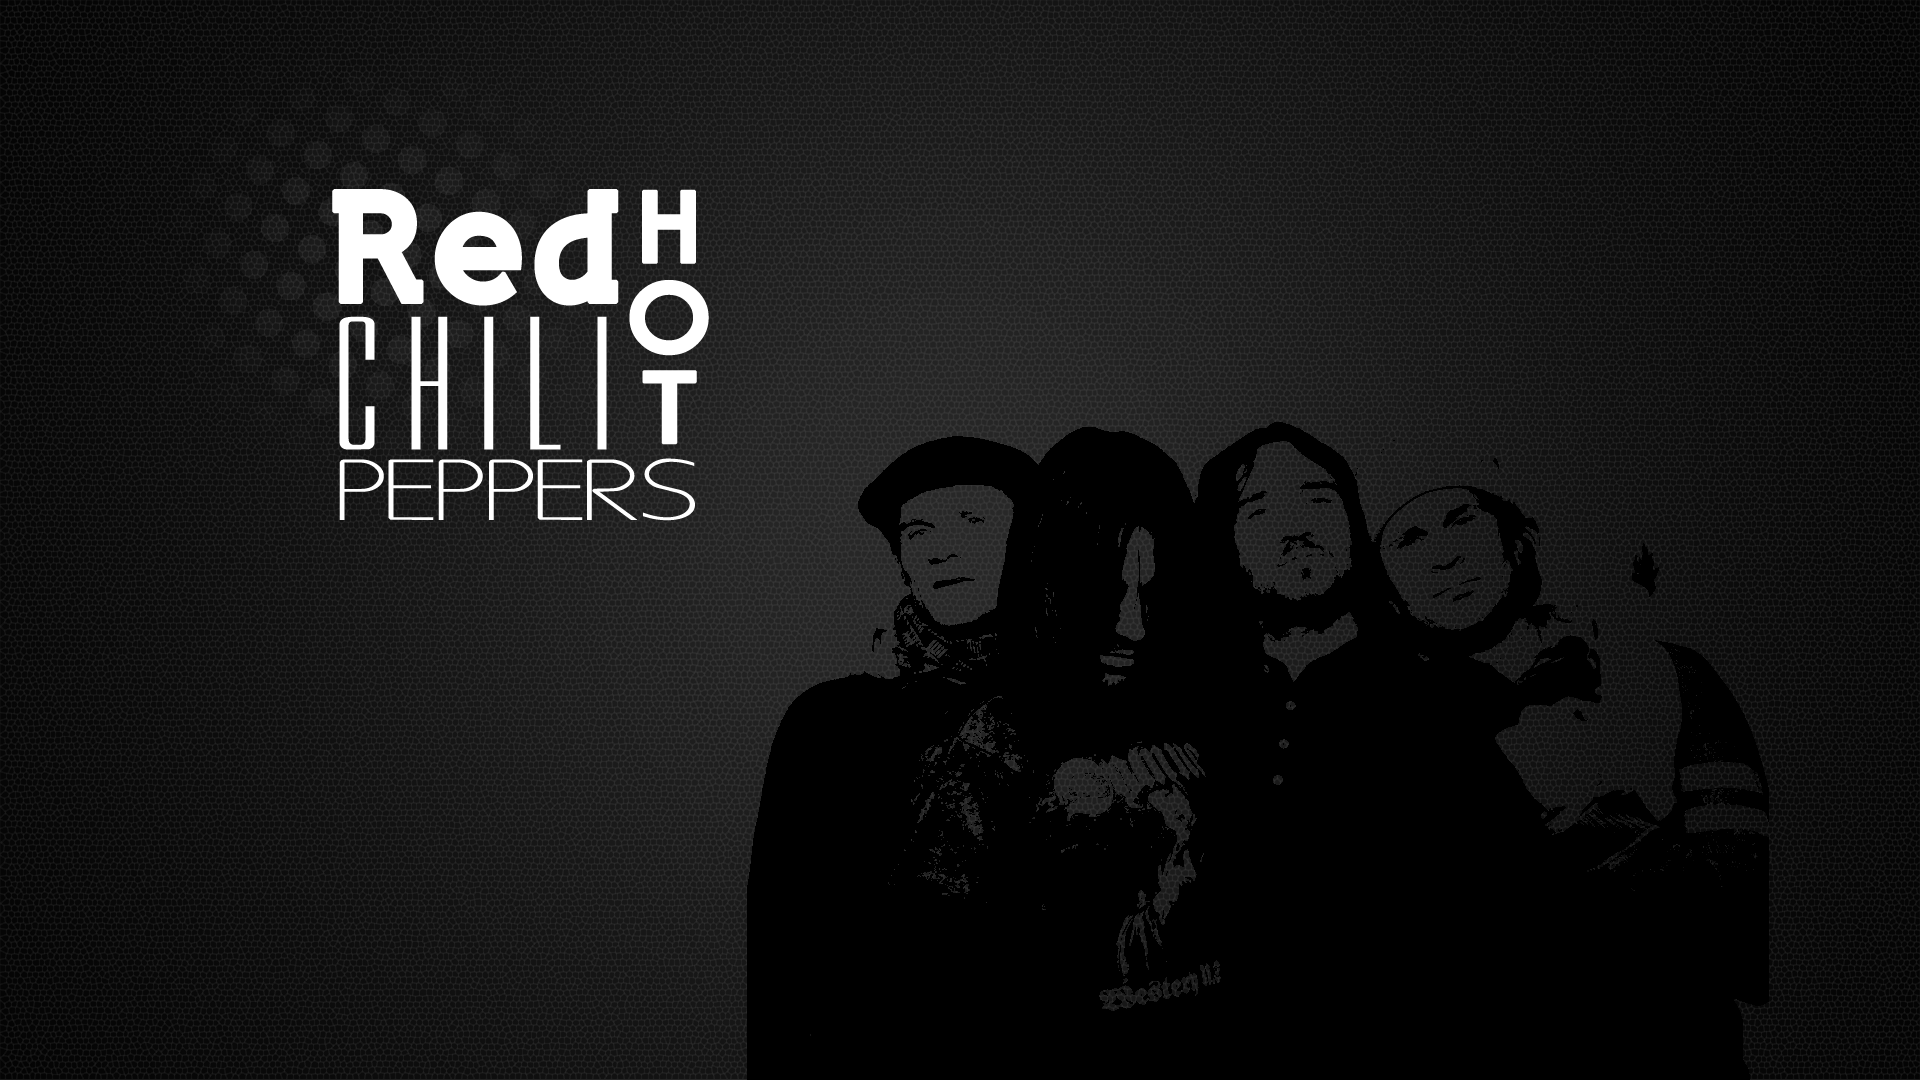 Wallpaper Red Hot Chili Peppers By Diigu On Deviantart